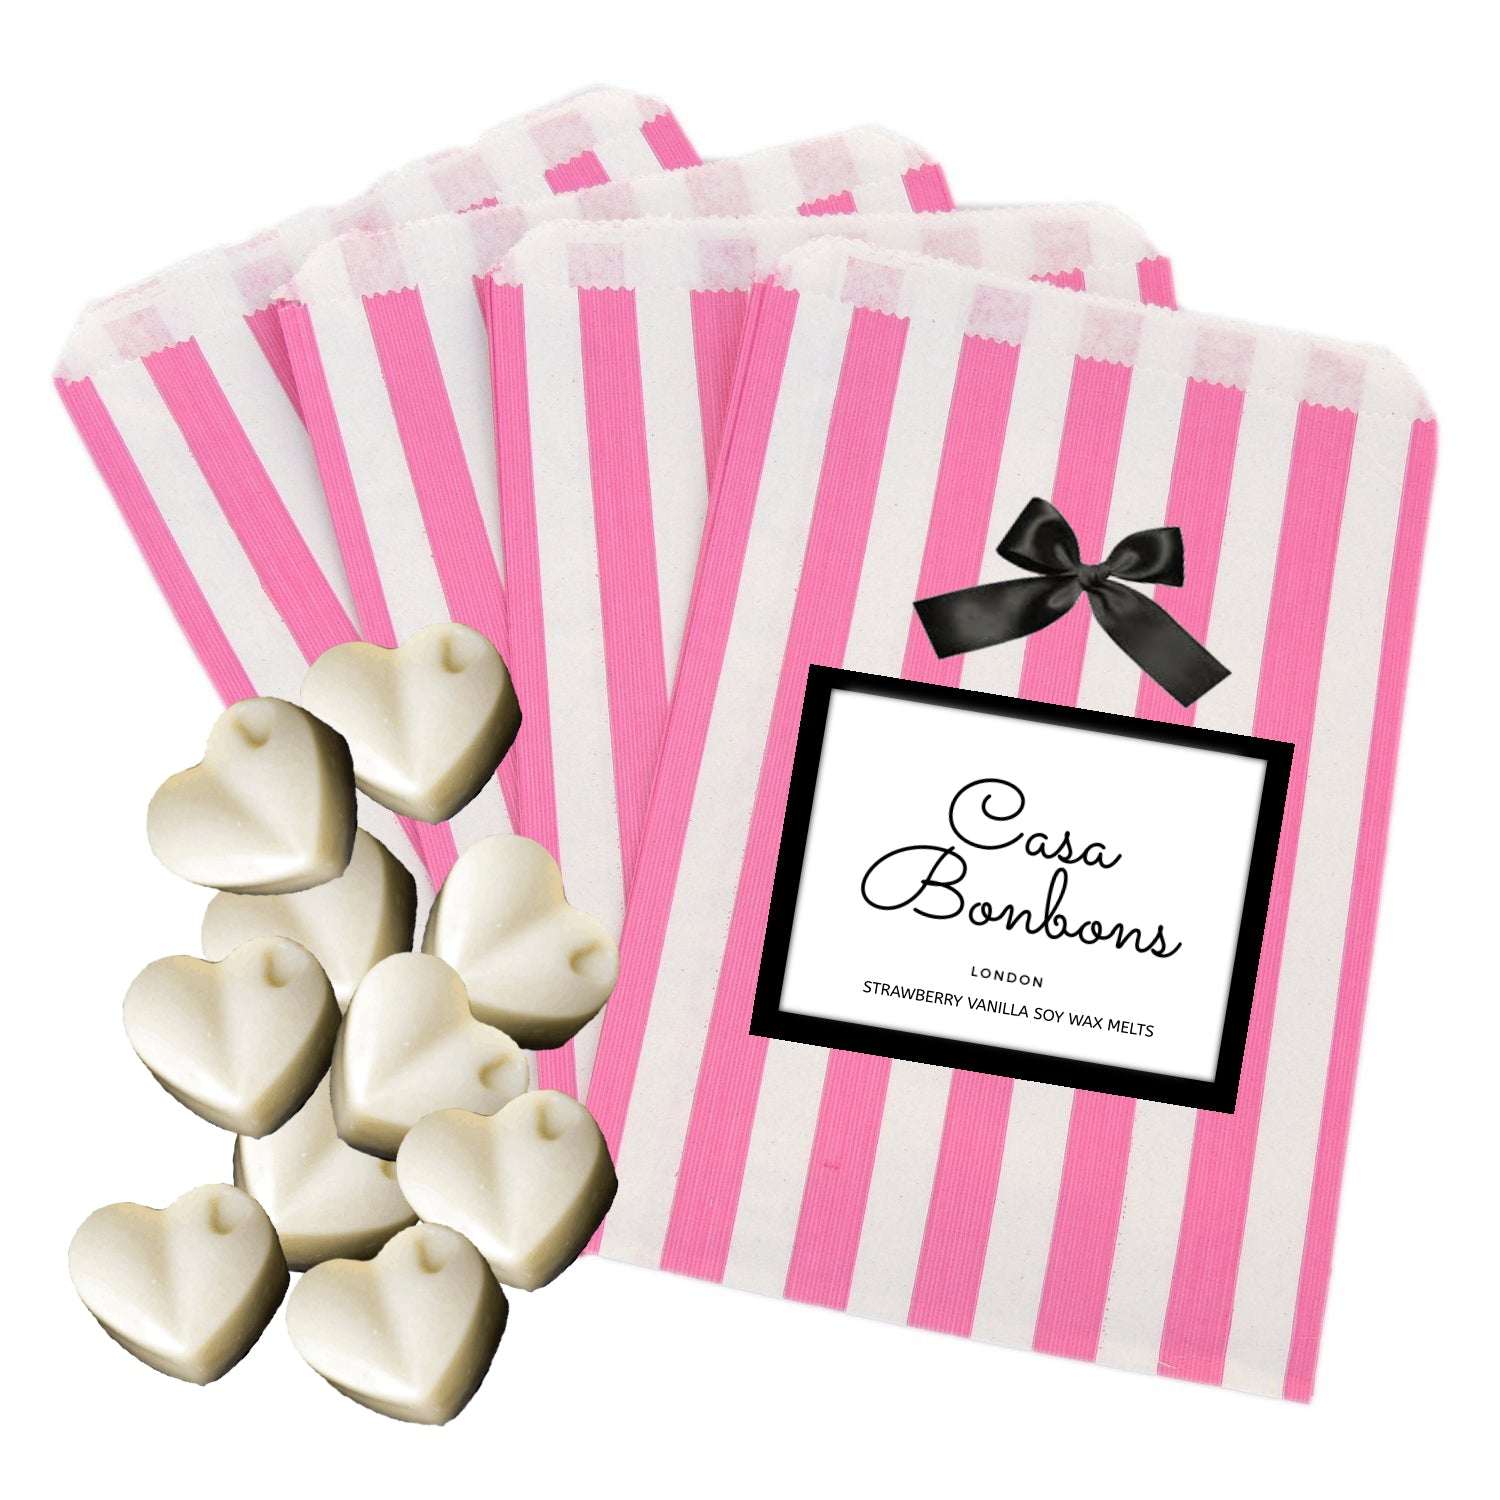 Strawberry & Vanilla gentle scented Soy Wax Melts (10 hearts), PRE ORDER delivery end of February - natoorio